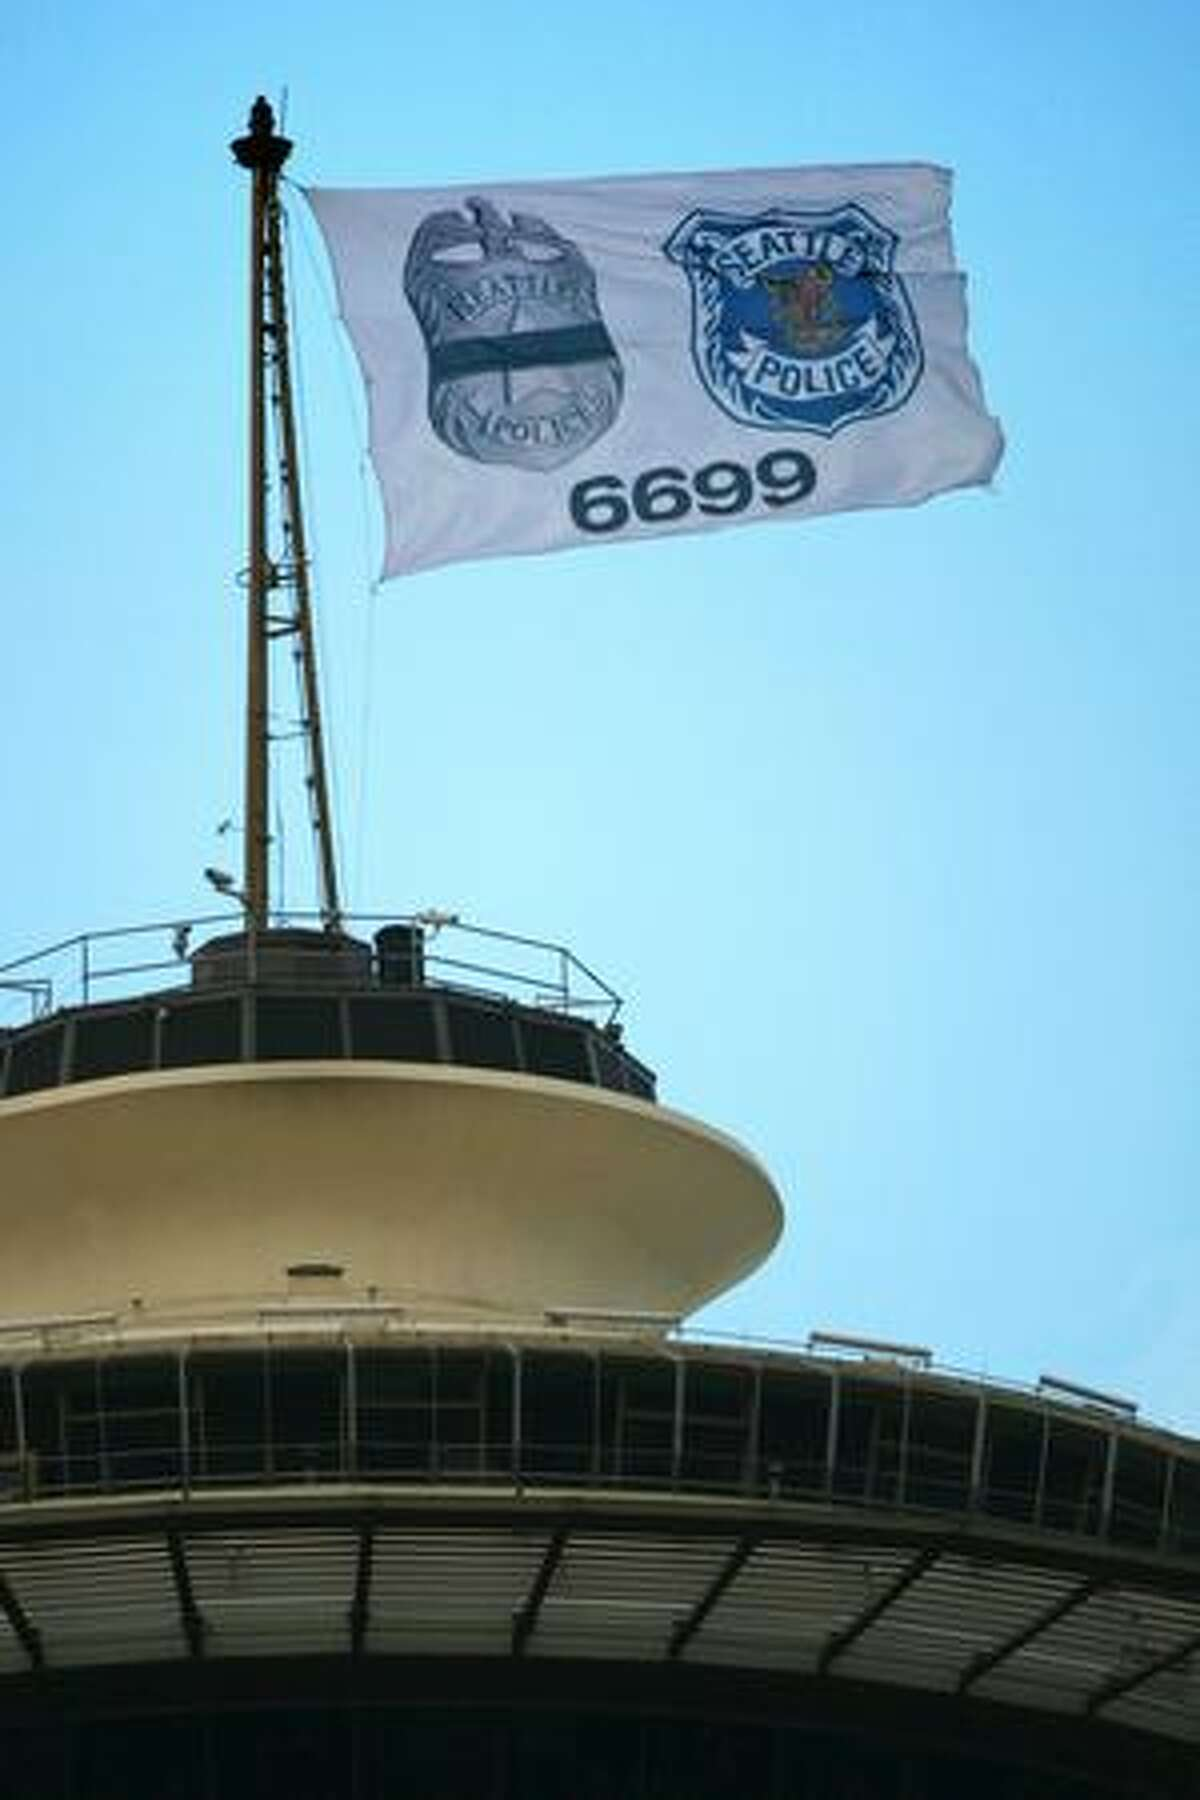 A special flag on top of the Space Needle honors slain Seattle Police Officer Tim Brenton. The flag shows a Seattle Police Department shield, an image of a badge covered by black mourning tape and Brenton's badge number.